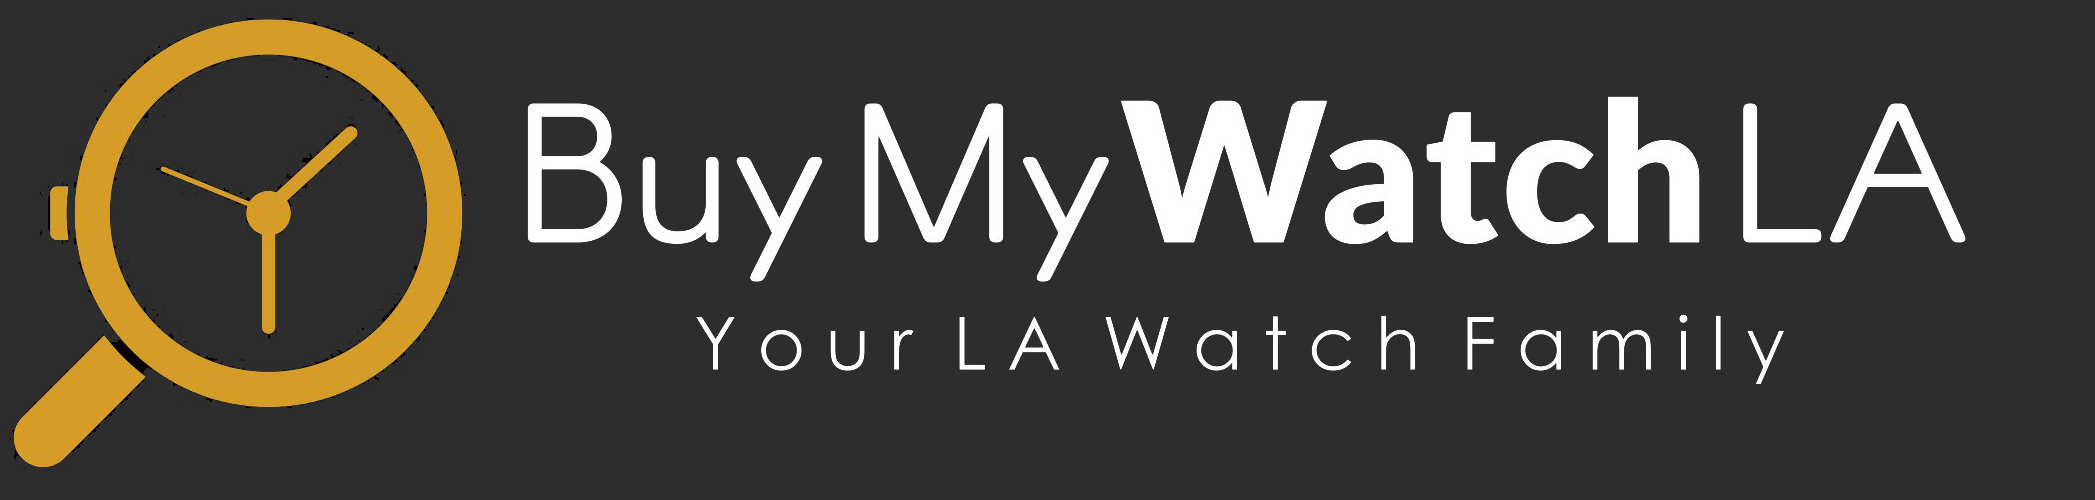 Buy Watch LA